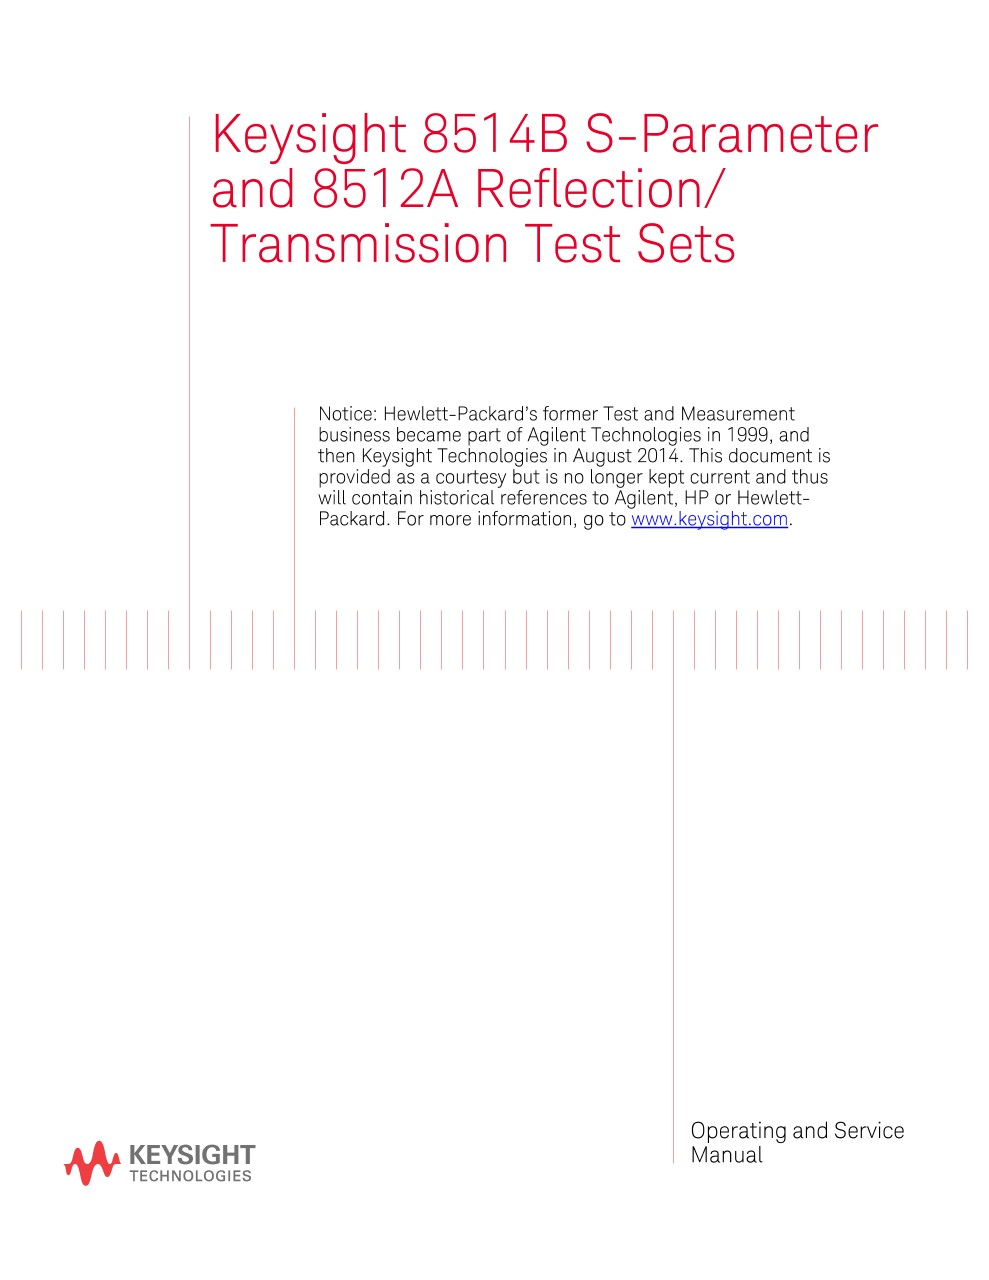 8514B S-Parameter and 8512A Reflection/Transmission Test Sets ...